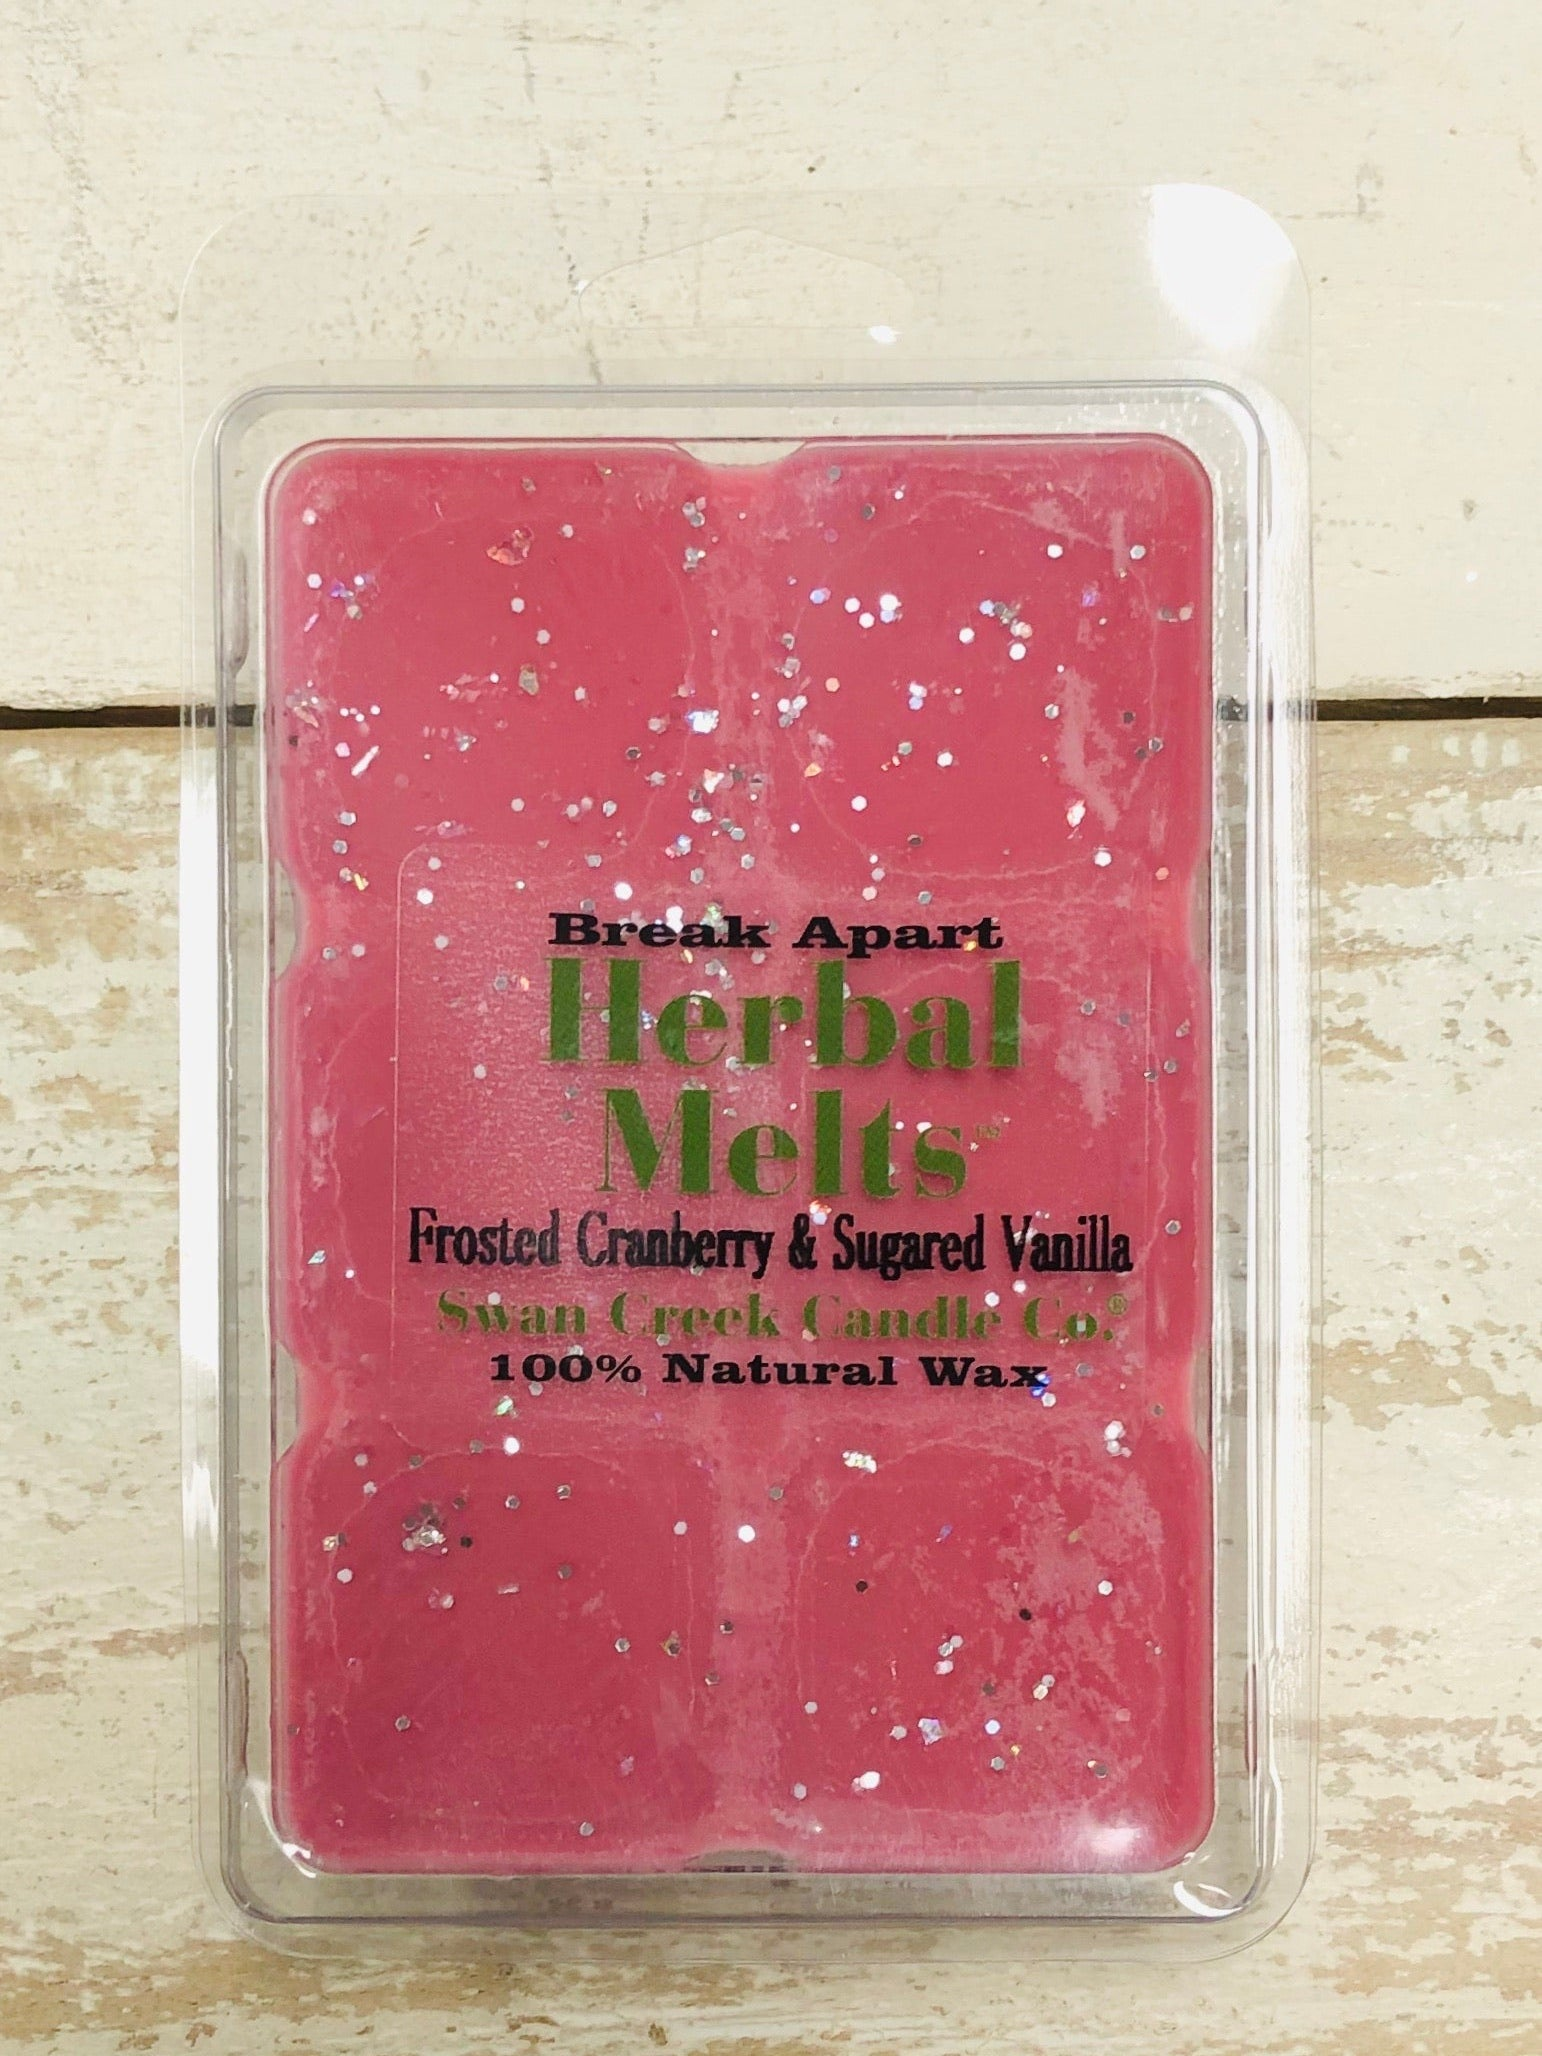 Herbal Melt, Frosted Cranberry/Sugared Vanilla